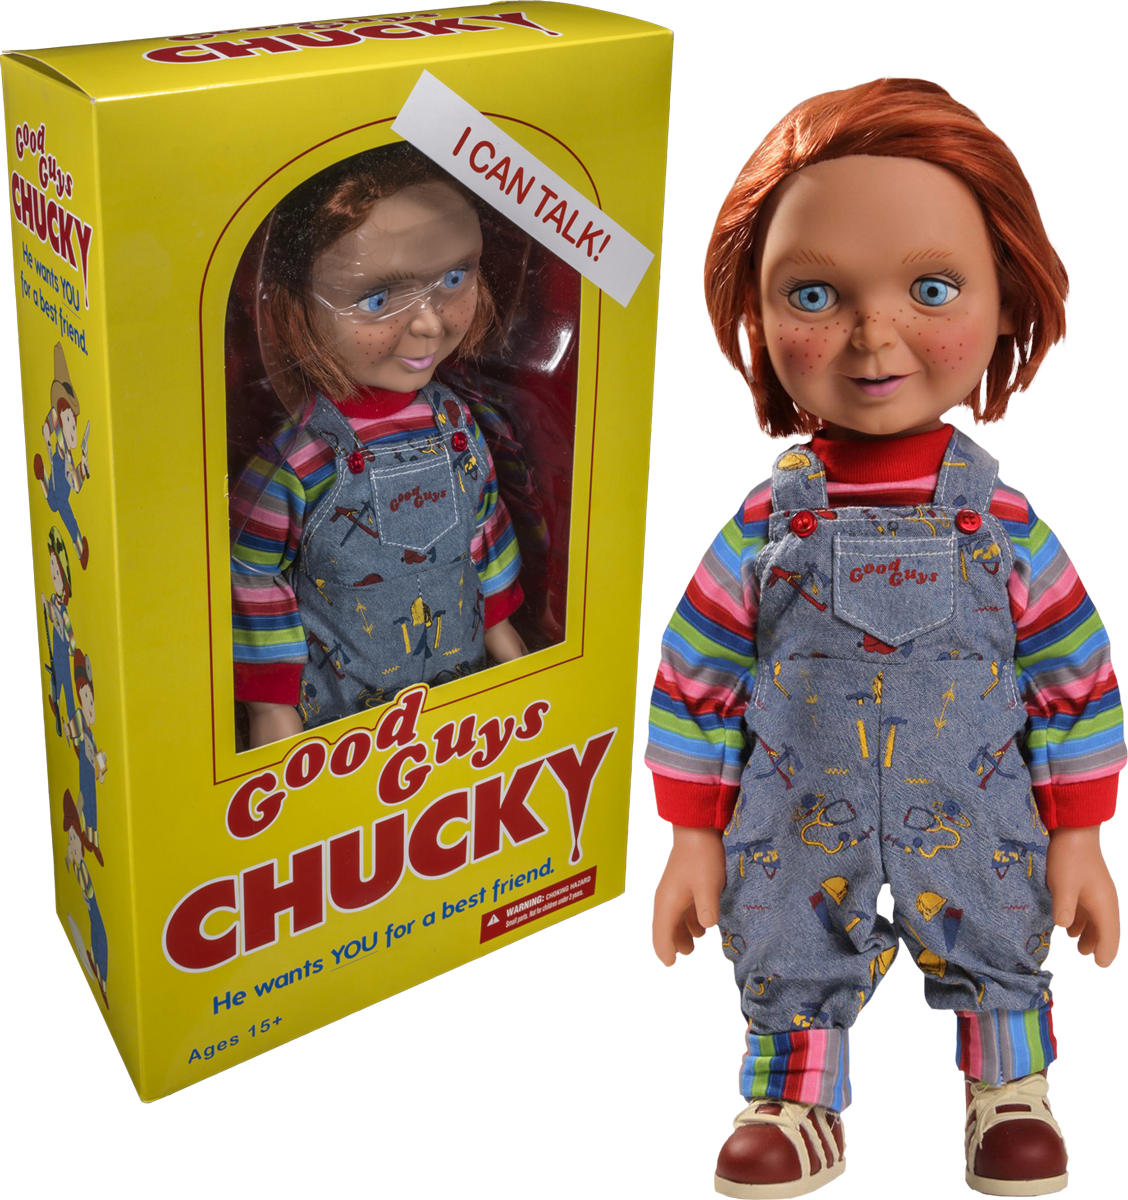 Chucky good guy 1/4 scale talking figure